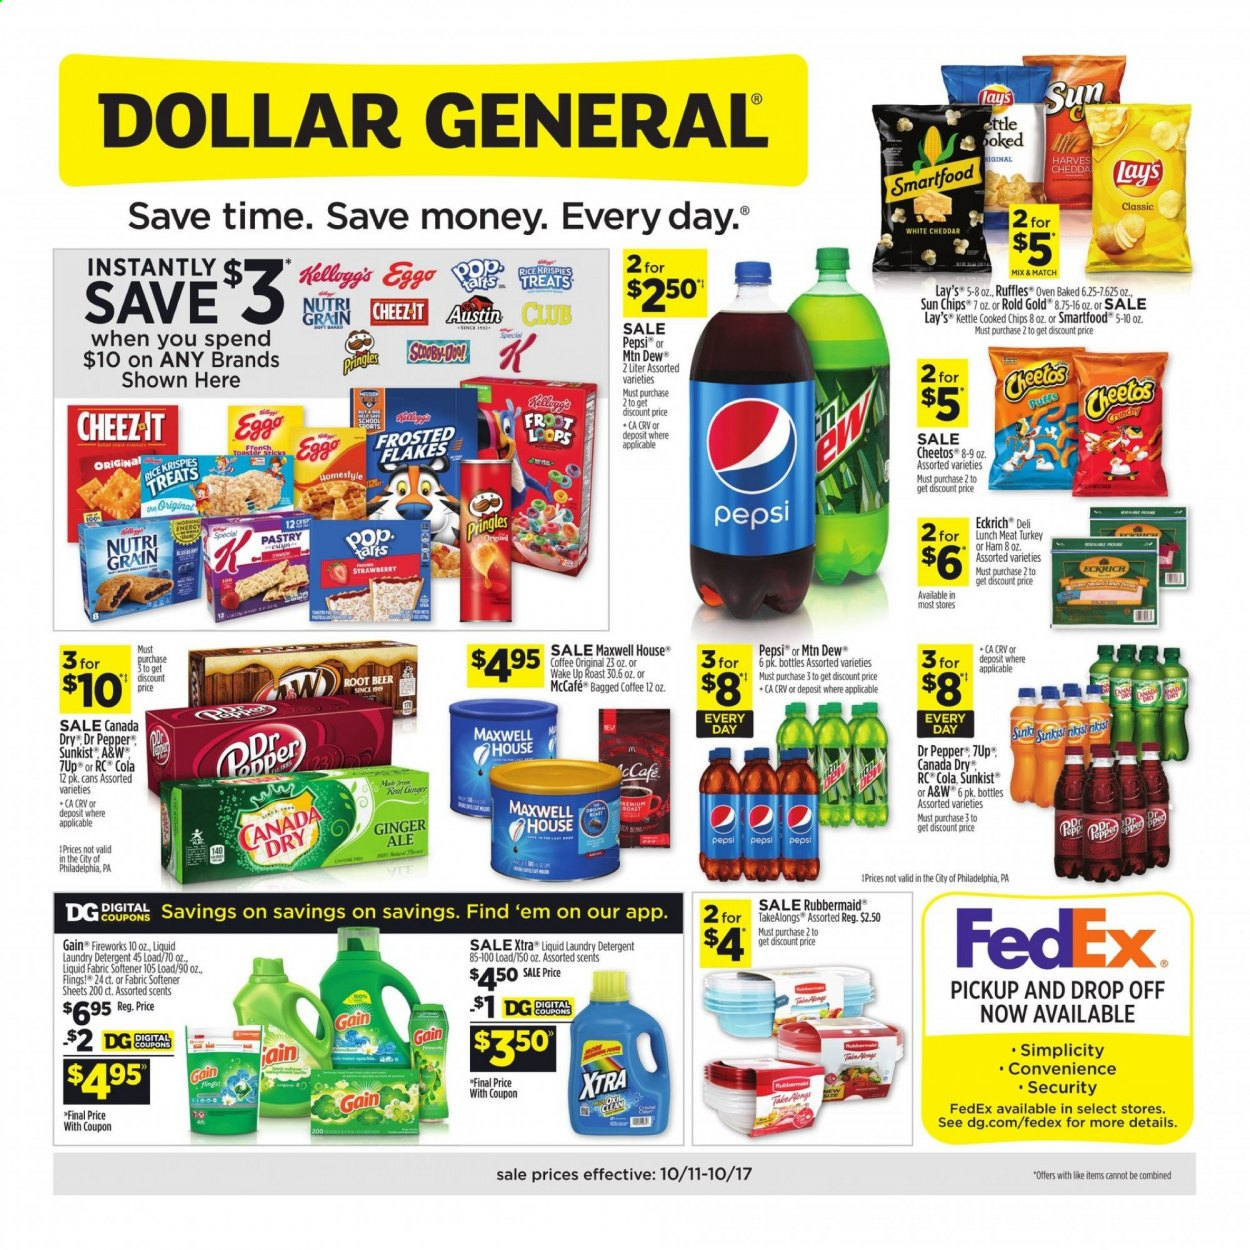 Dollar General Flyer - 10.11.2020 - 10.17.2020 - Sales products - ale, beer, canada dry, detergent, dolce & gabbana, gain, ginger, lunchmeat, maxwell house, maxwell house coffee, rice, sink, turkey, ham, philadelphia, pringles, puffs, cheddar, cheetos, pepsi, oven, chips, pepper, softener, lay's, flakes, strawberry, liquid, treats, meat, laundry detergent, roast, kettle. Page 1.